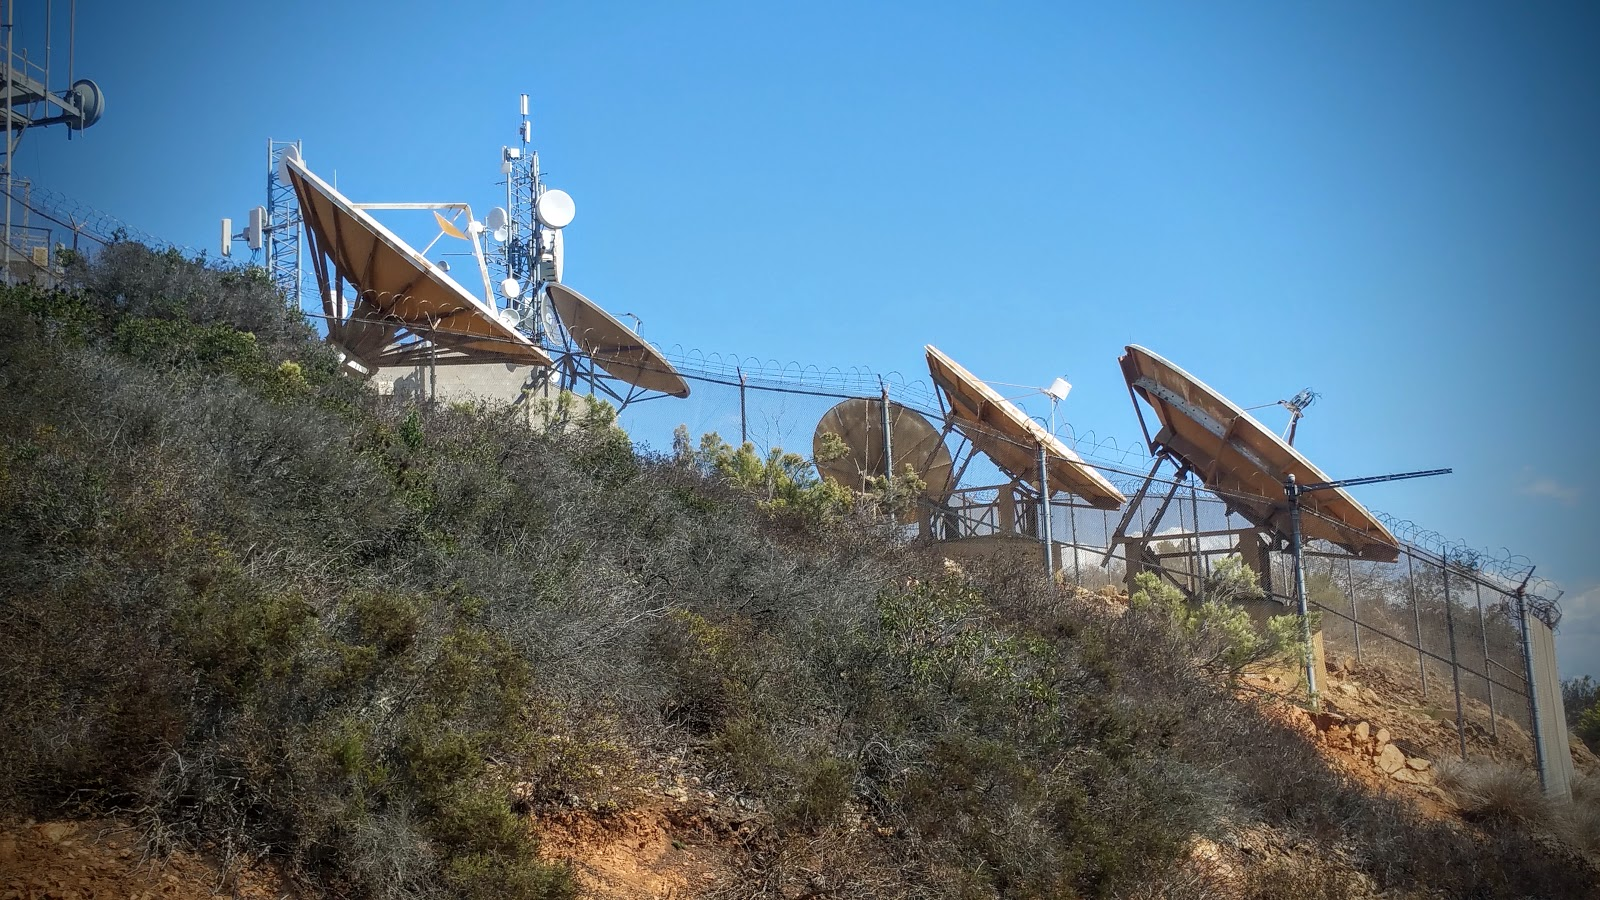 Barb wire surrounds two large satellies dishes.